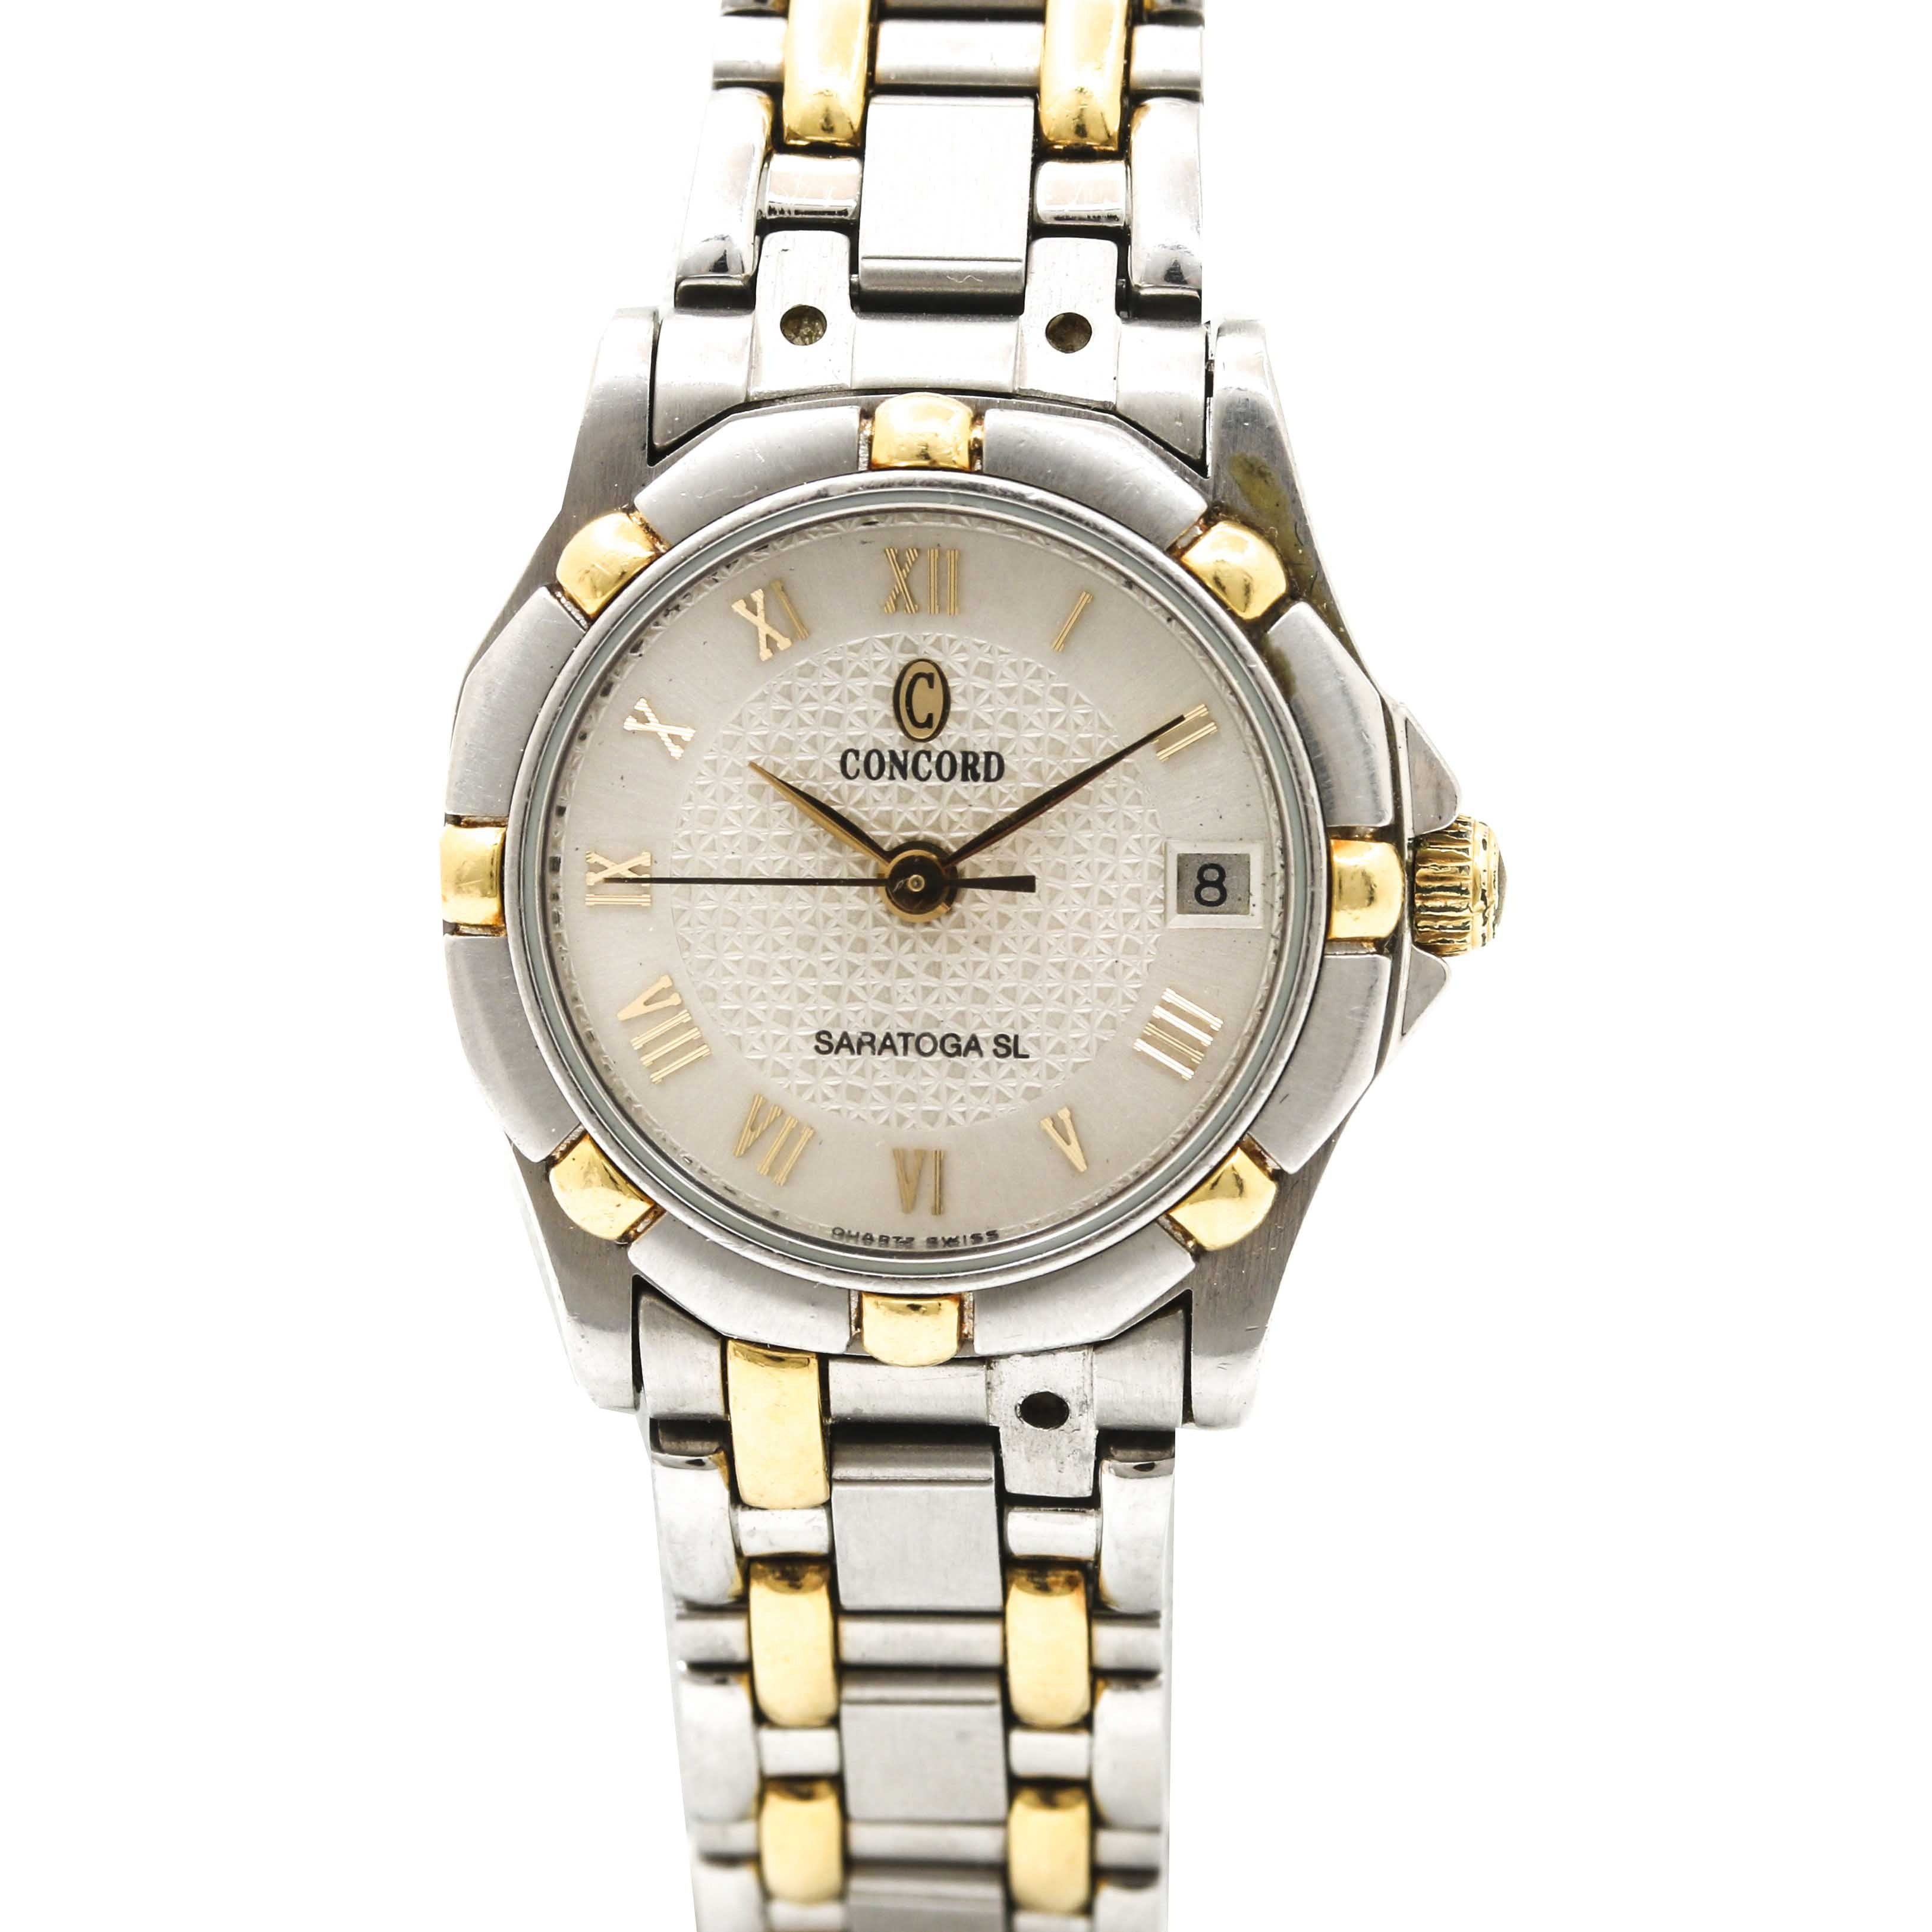 Concord 18K Yellow Gold and Stainless Steel Wristwatch